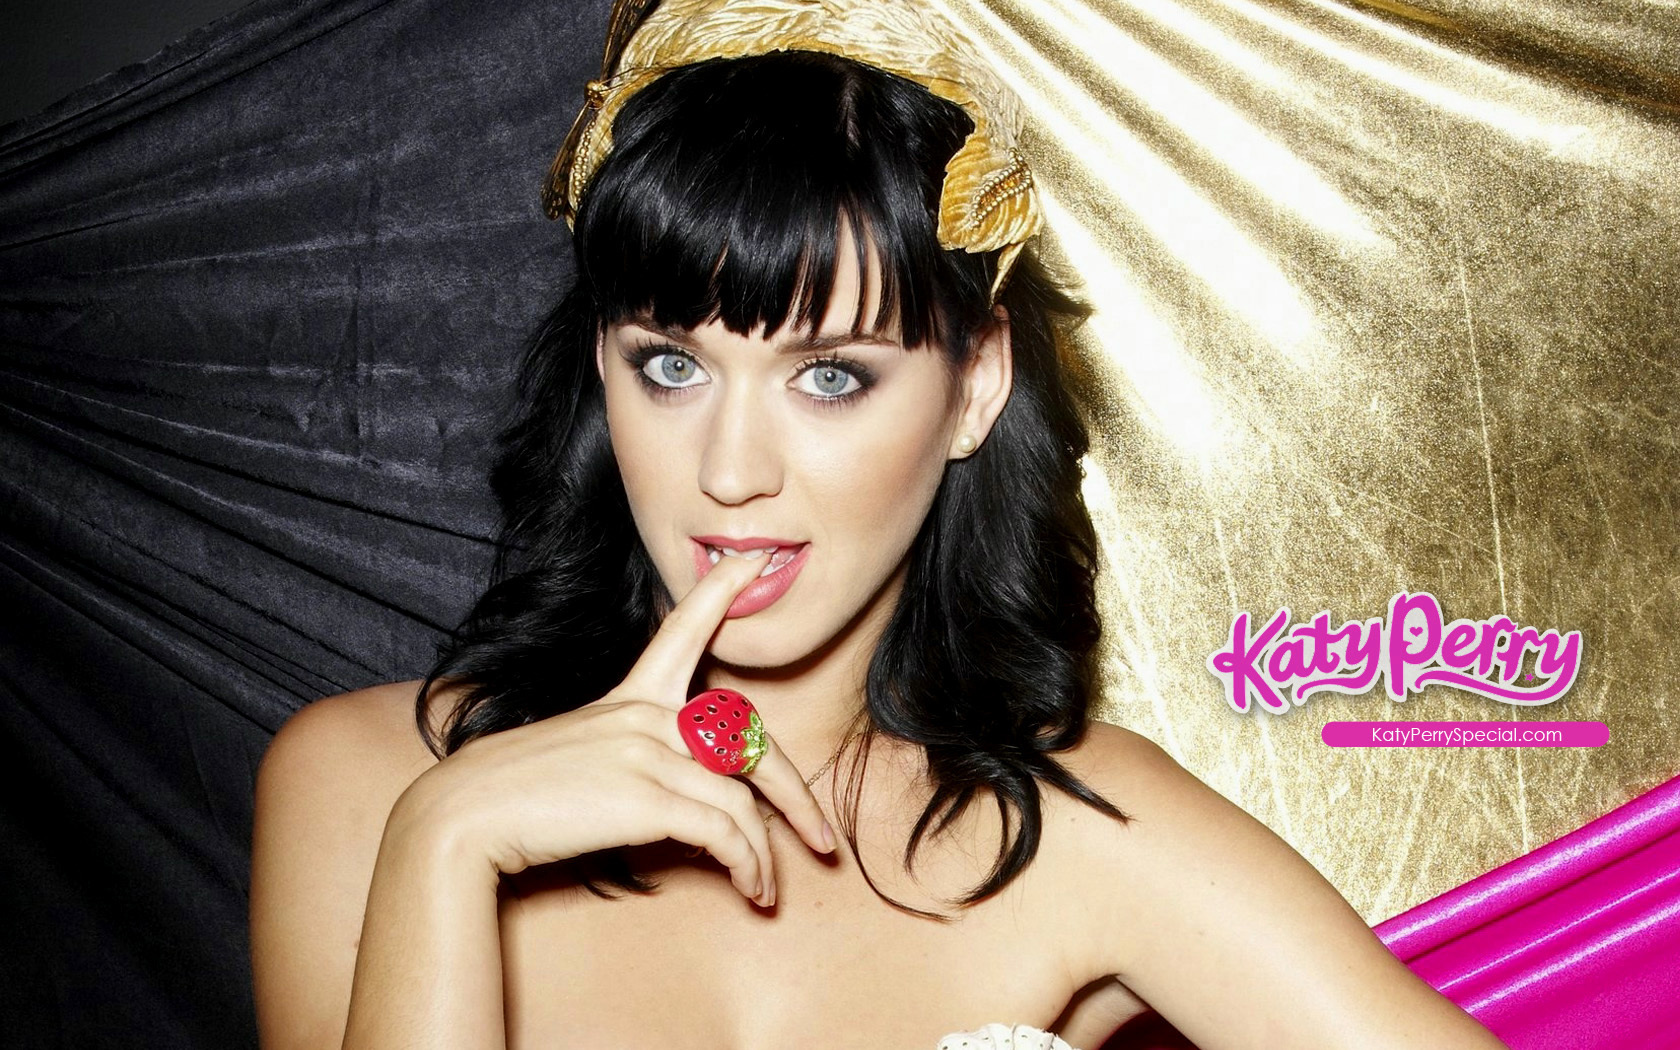 http://images2.fanpop.com/image/photos/9500000/katy-perry-katy-perry-9507115-1680-1050.jpg